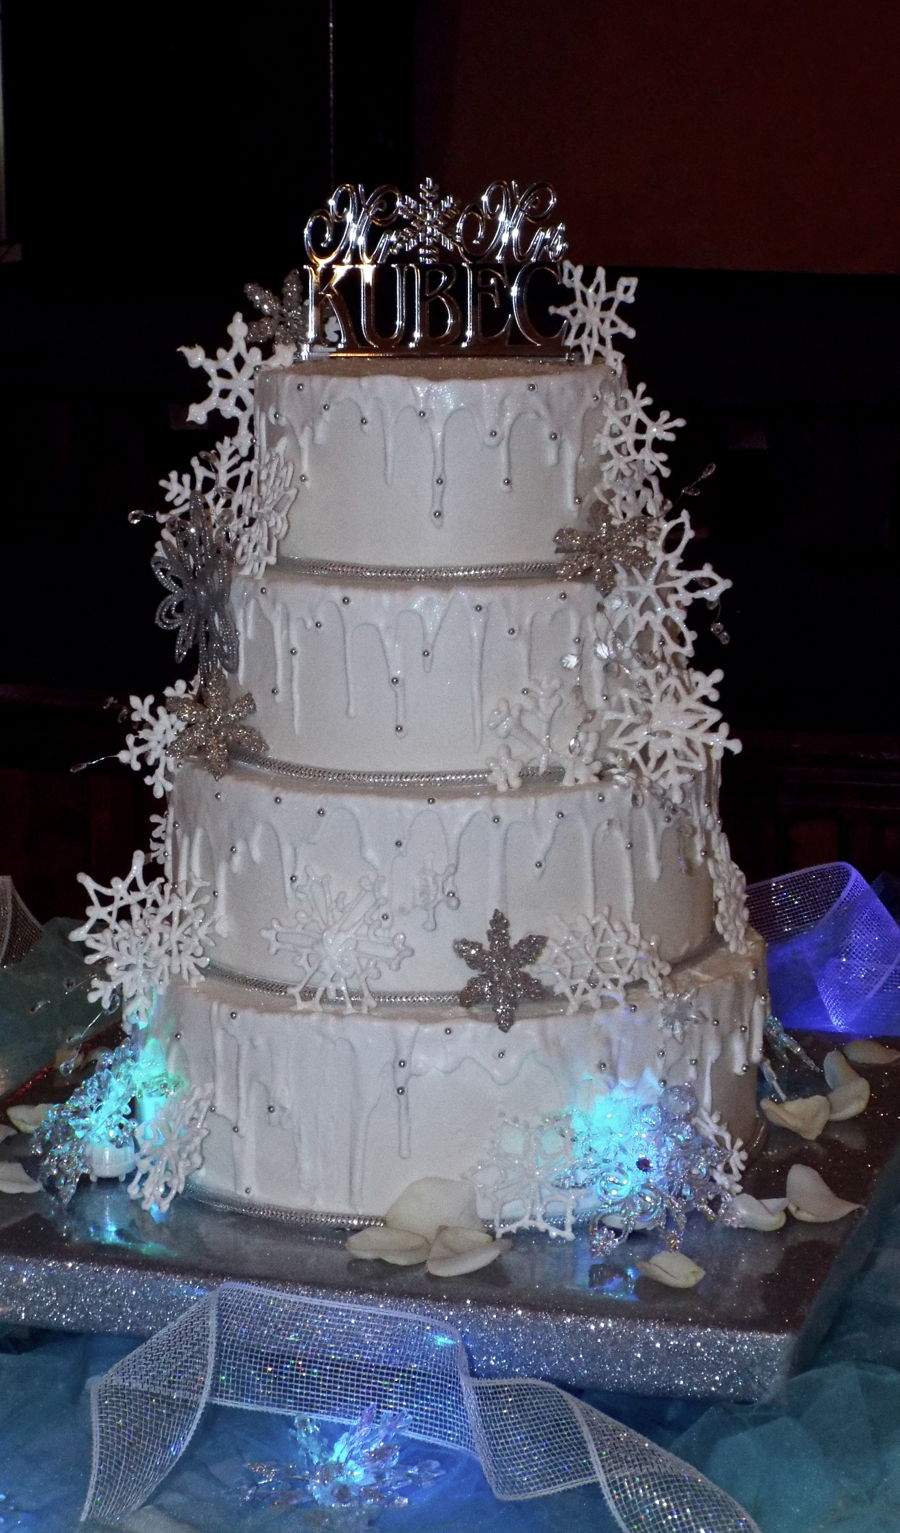 Royal Icing Snowflake Cake - CakeCentral.com